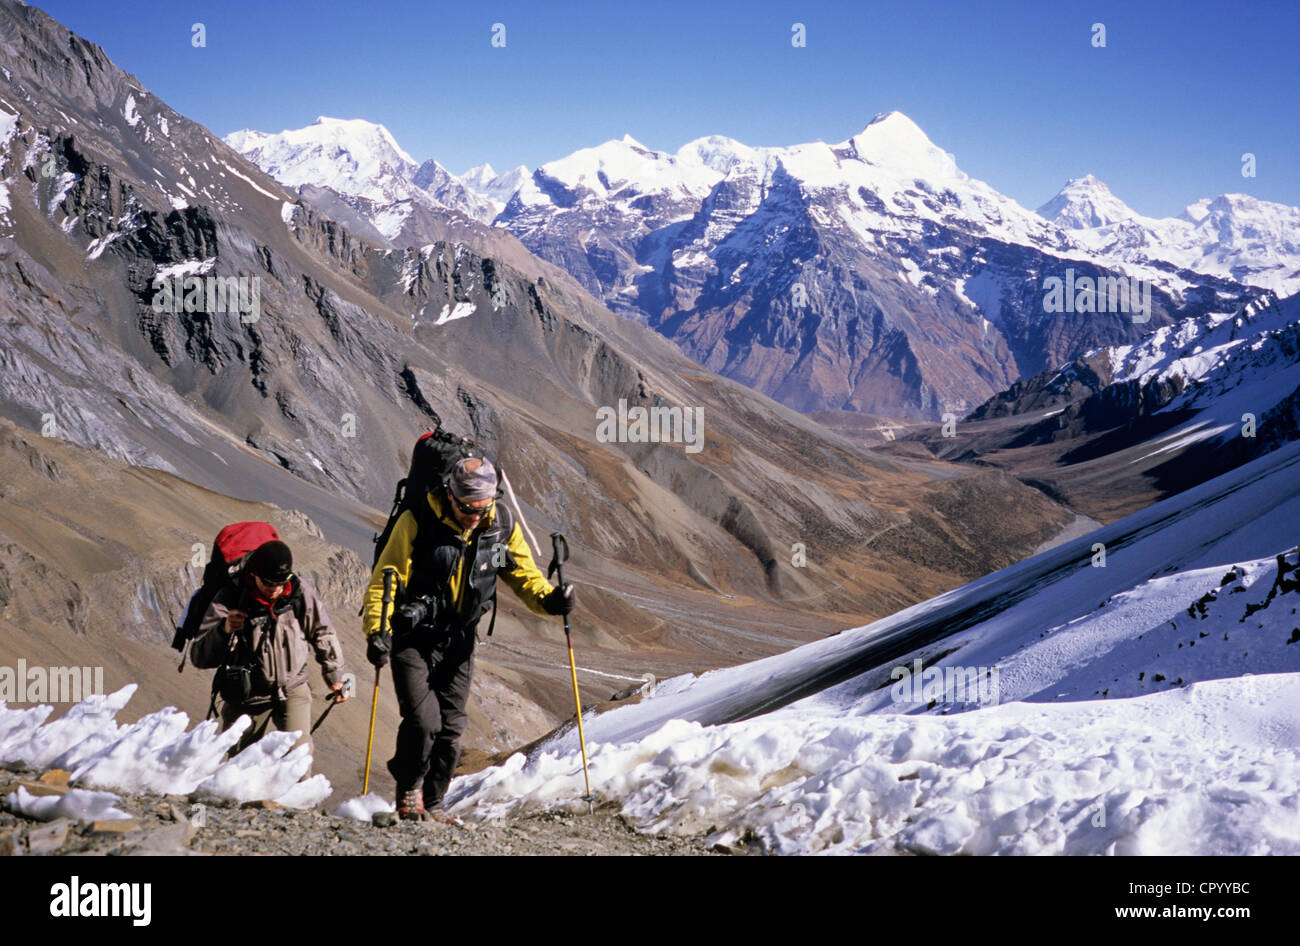 Nepal, Pokhara Province, Kang La Mount, 5300m, between the village of Naar and the track of the Annapurnas tour - Stock Image